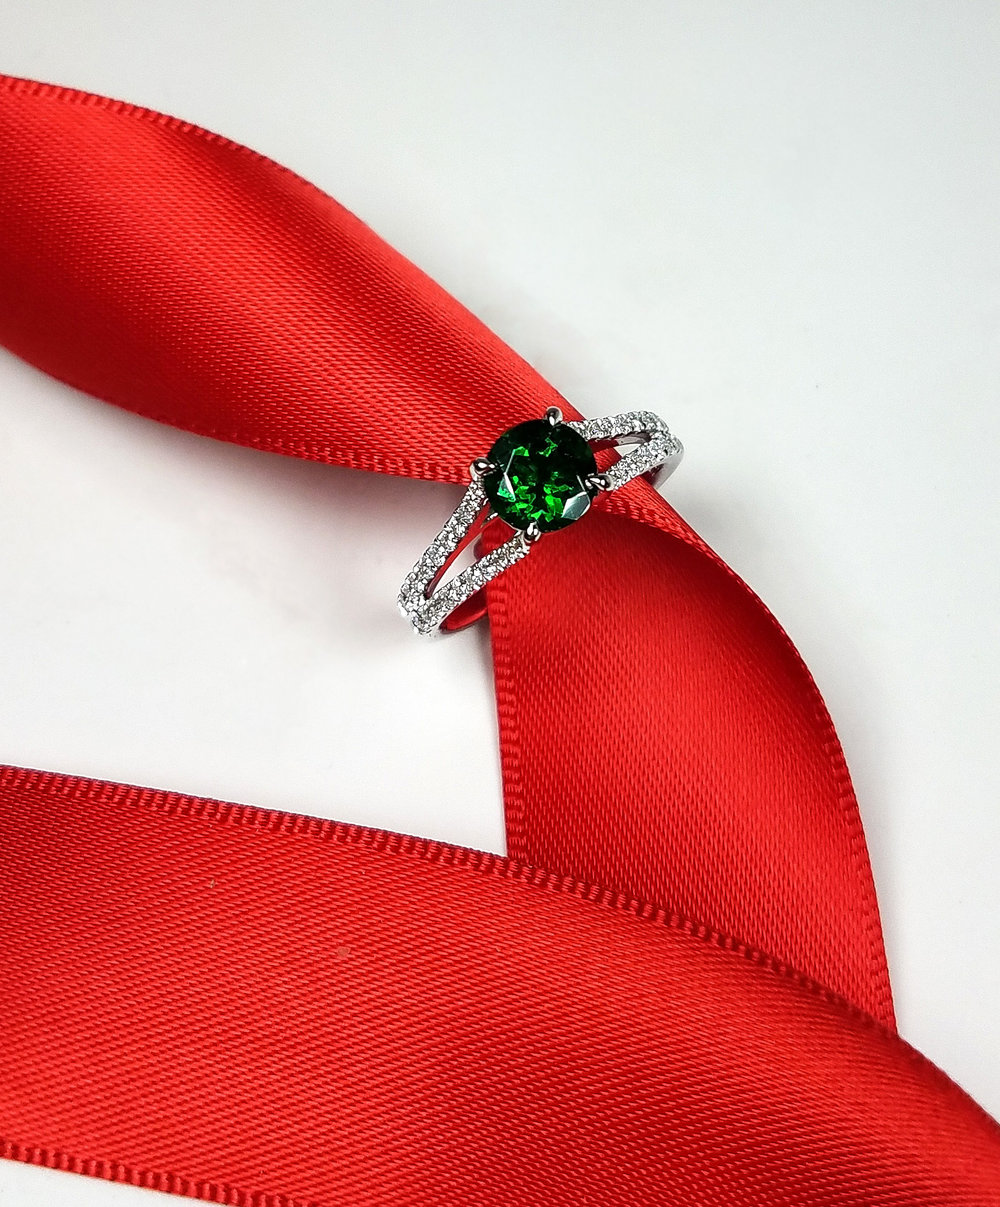 tsavorite_diamond_ring_2_redford_jewelers_holiday_2018.jpg